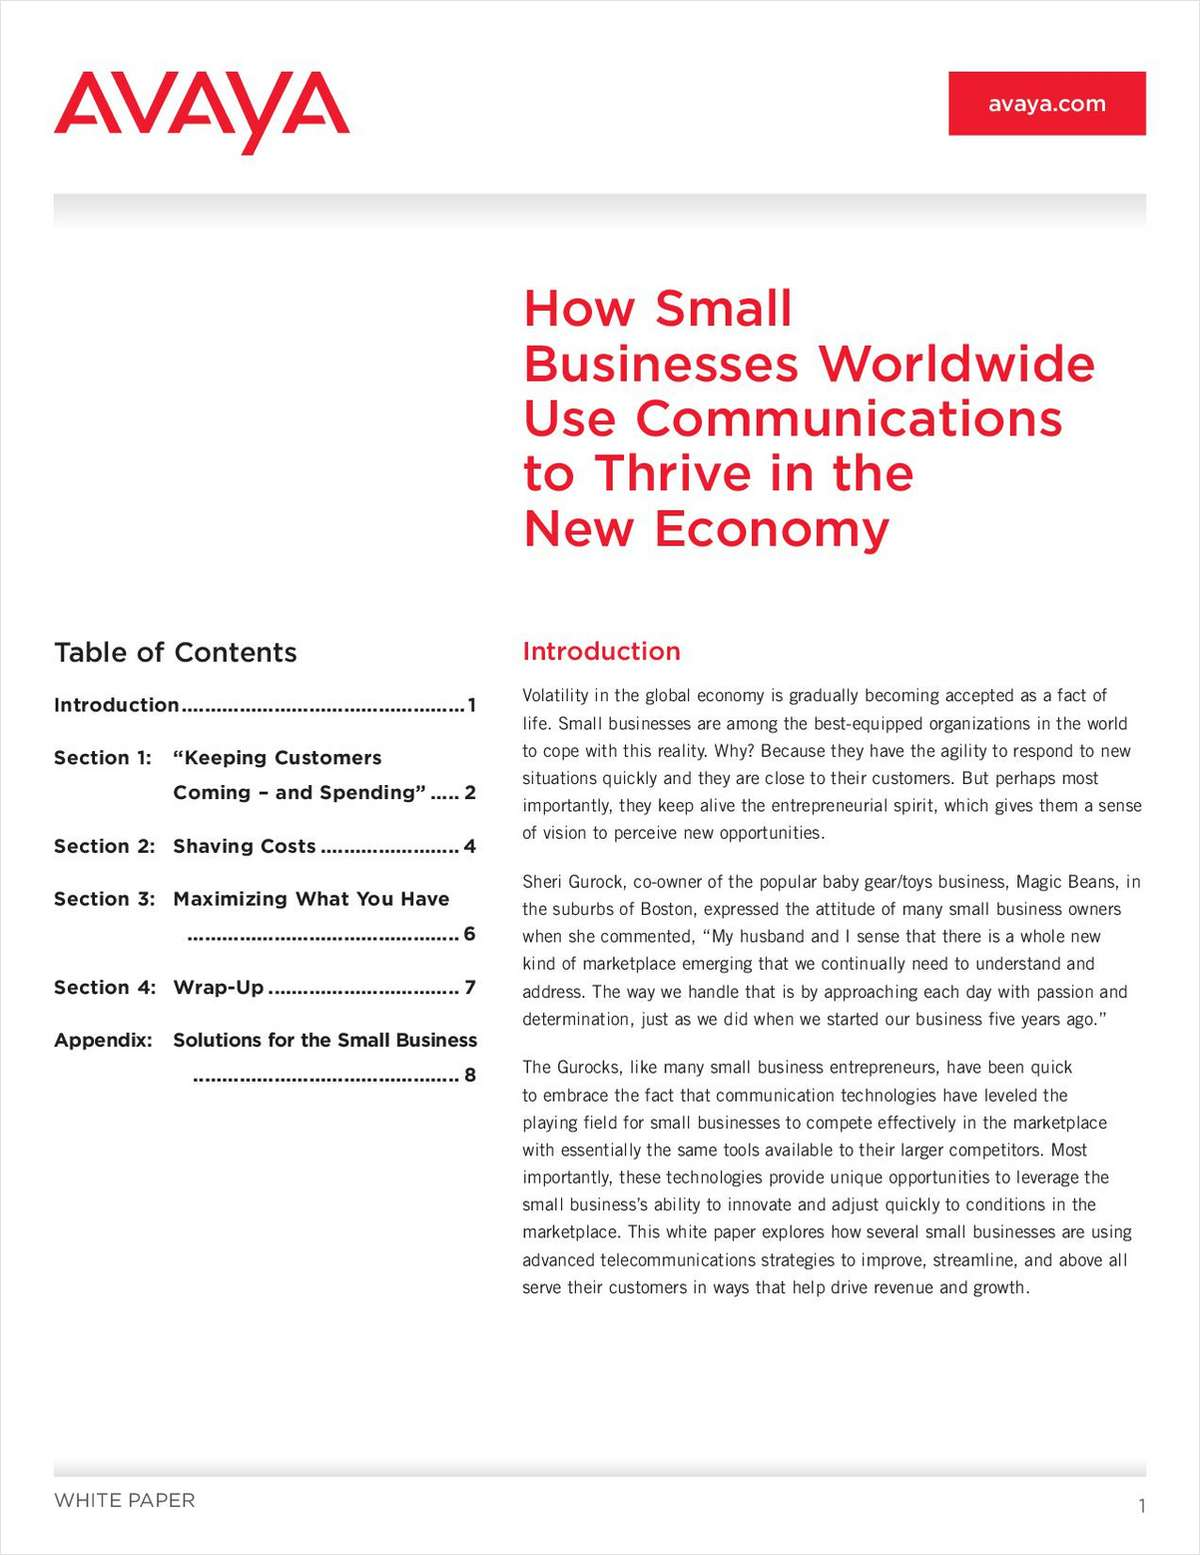 How Small Businesses Worldwide Use Communications to Thrive in the New Economy